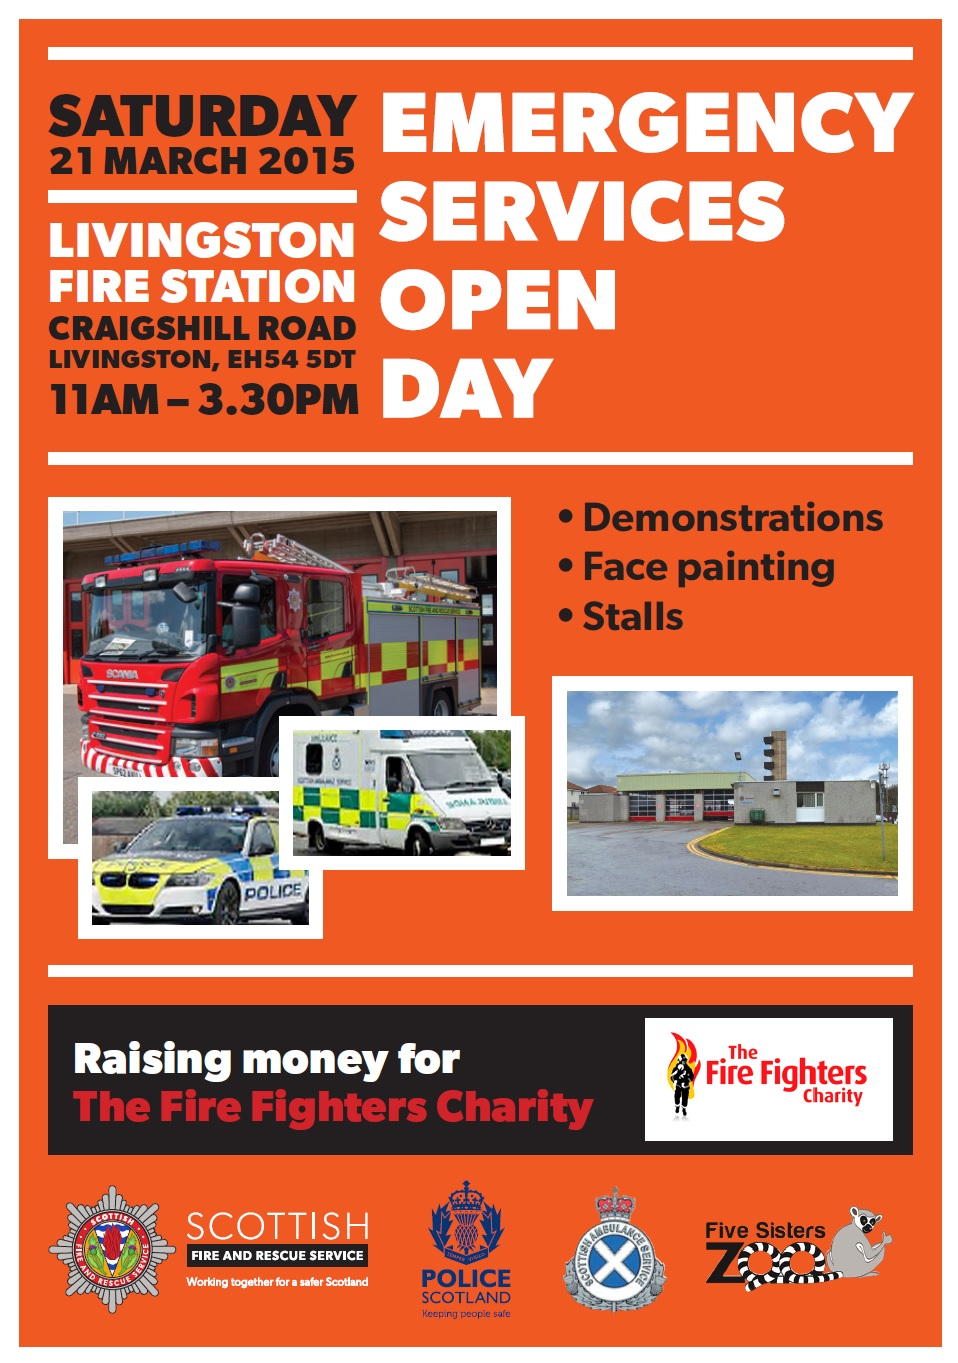 Livingston fire station Open Day